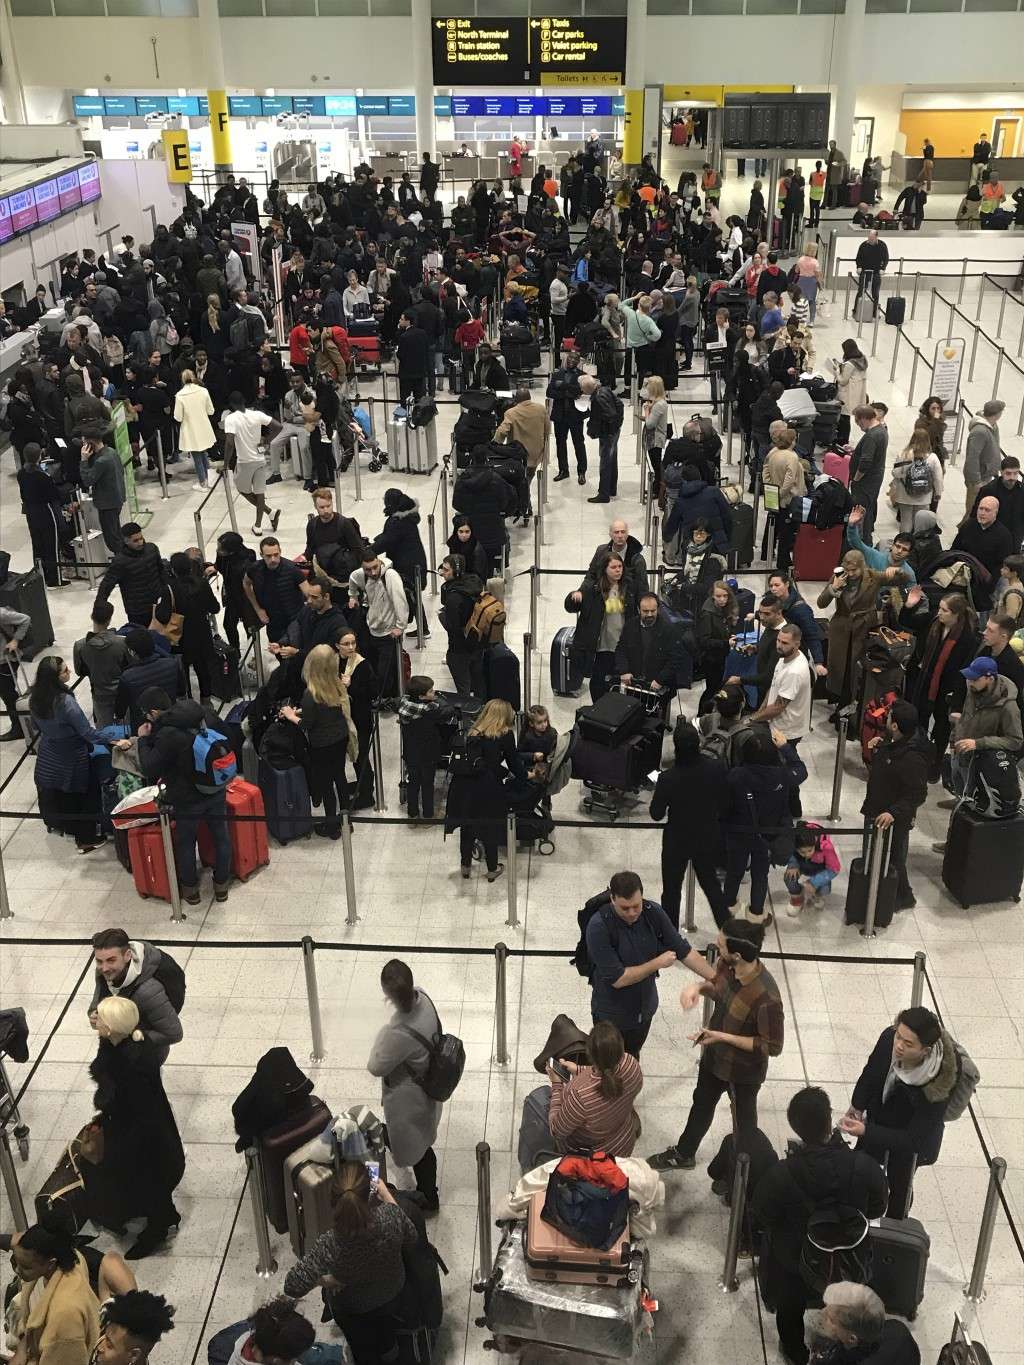 Passengers wait to check in at Gatwick Airport in England, Friday, Dec. 21, 2018. Flights resumed at London's Gatwick Airport on Friday morning after